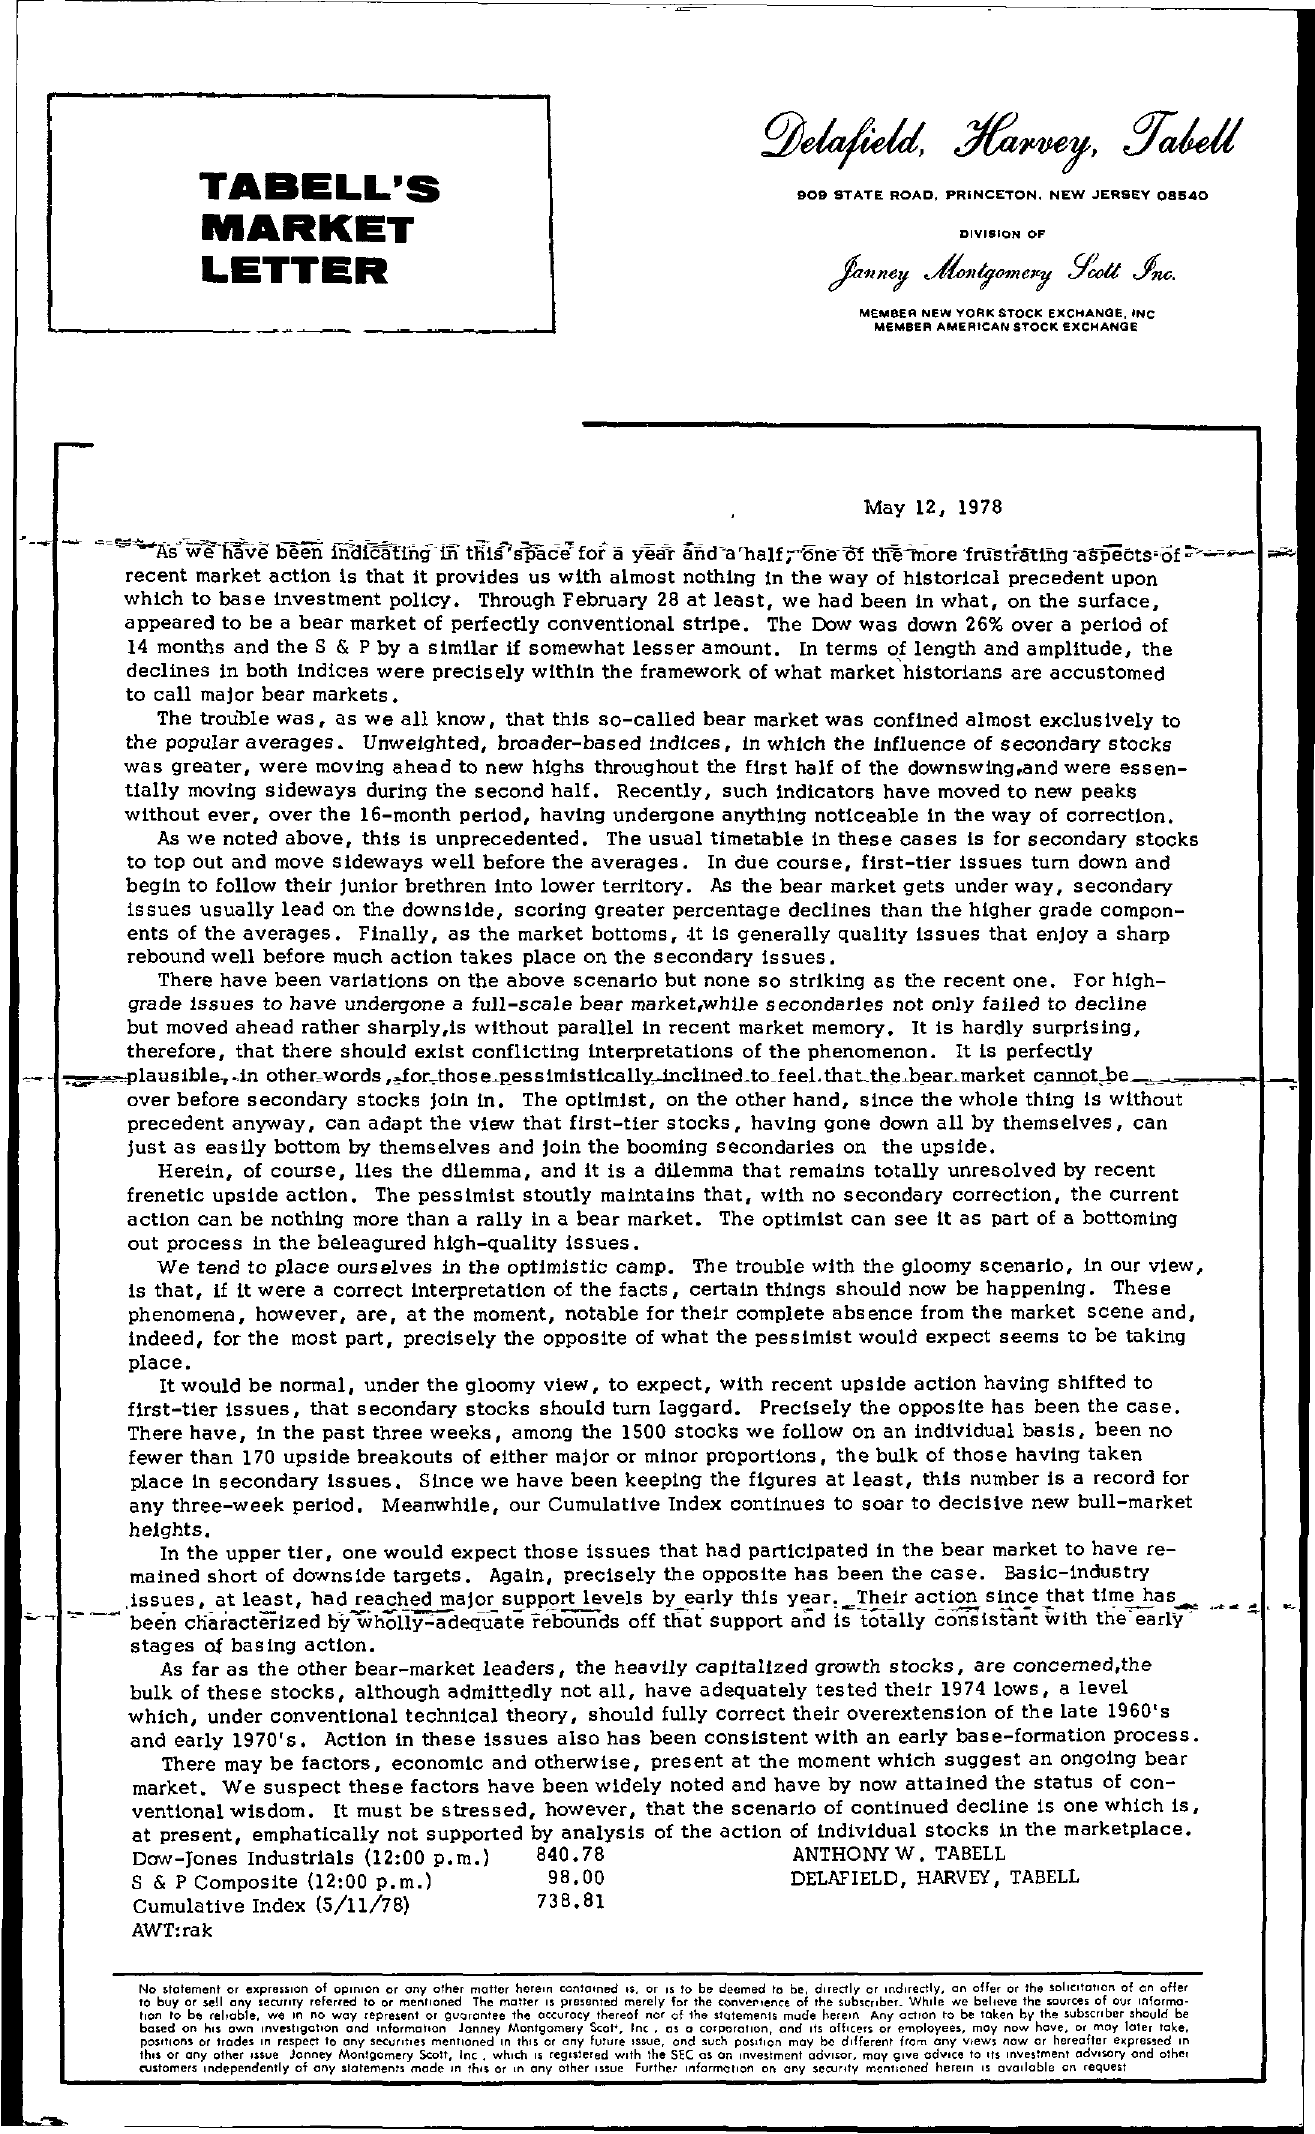 Tabell's Market Letter - May 12, 1978